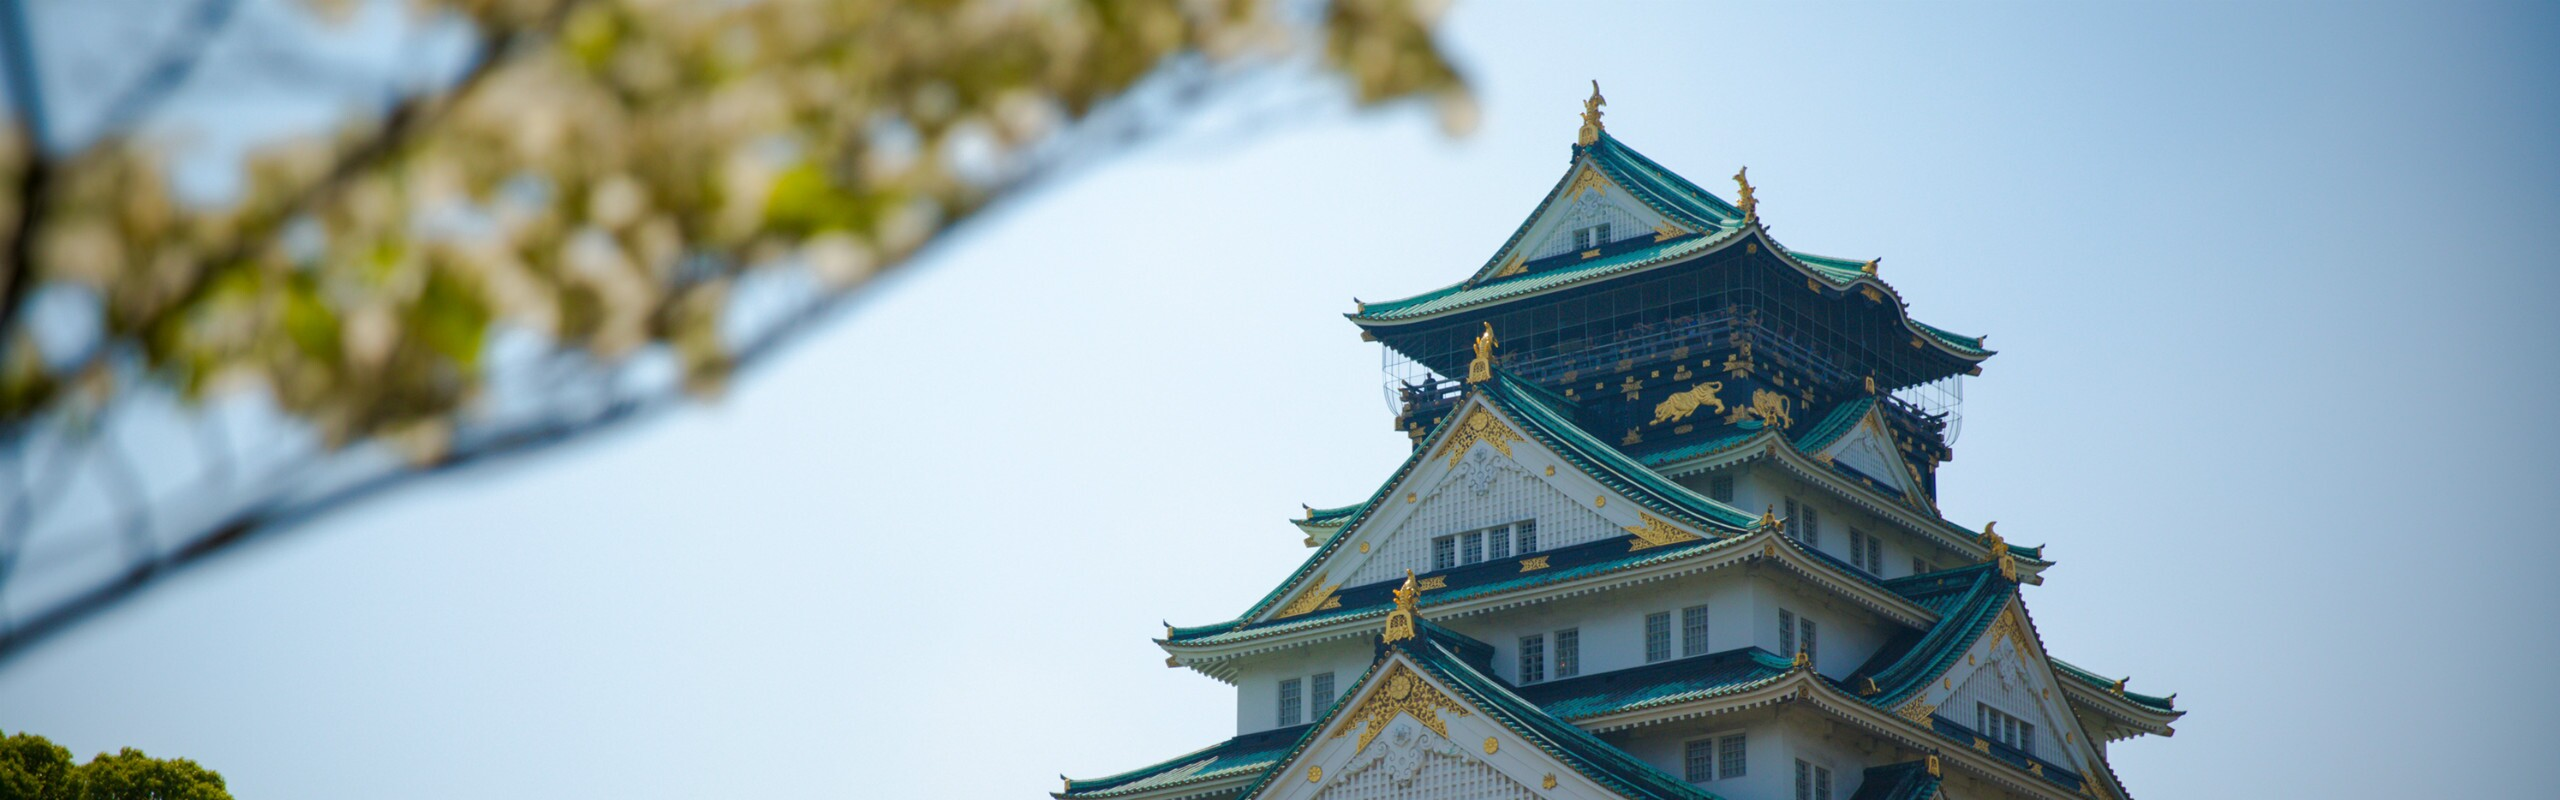 Top Attractions in Osaka